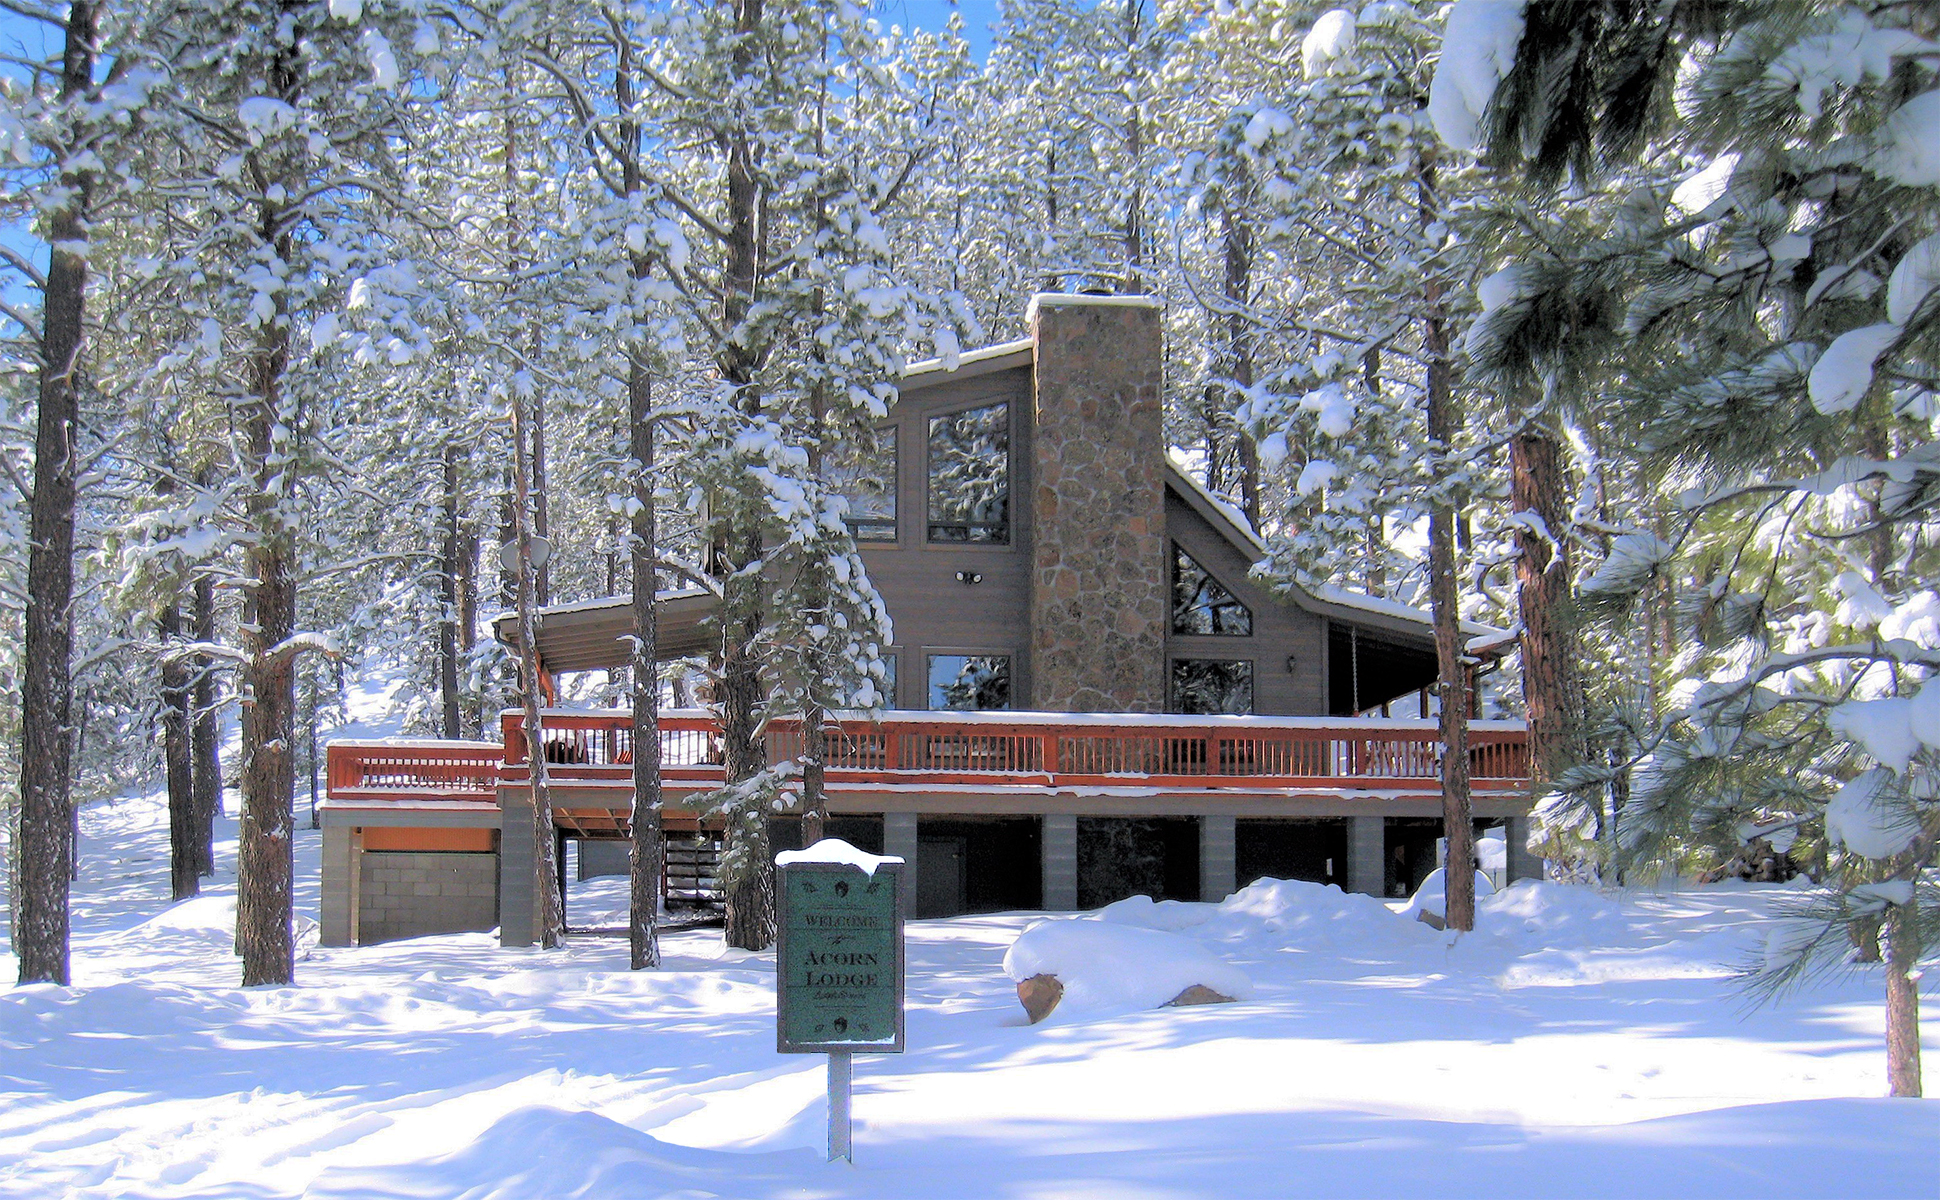 Acorn Lodge AZ in the snow (image)